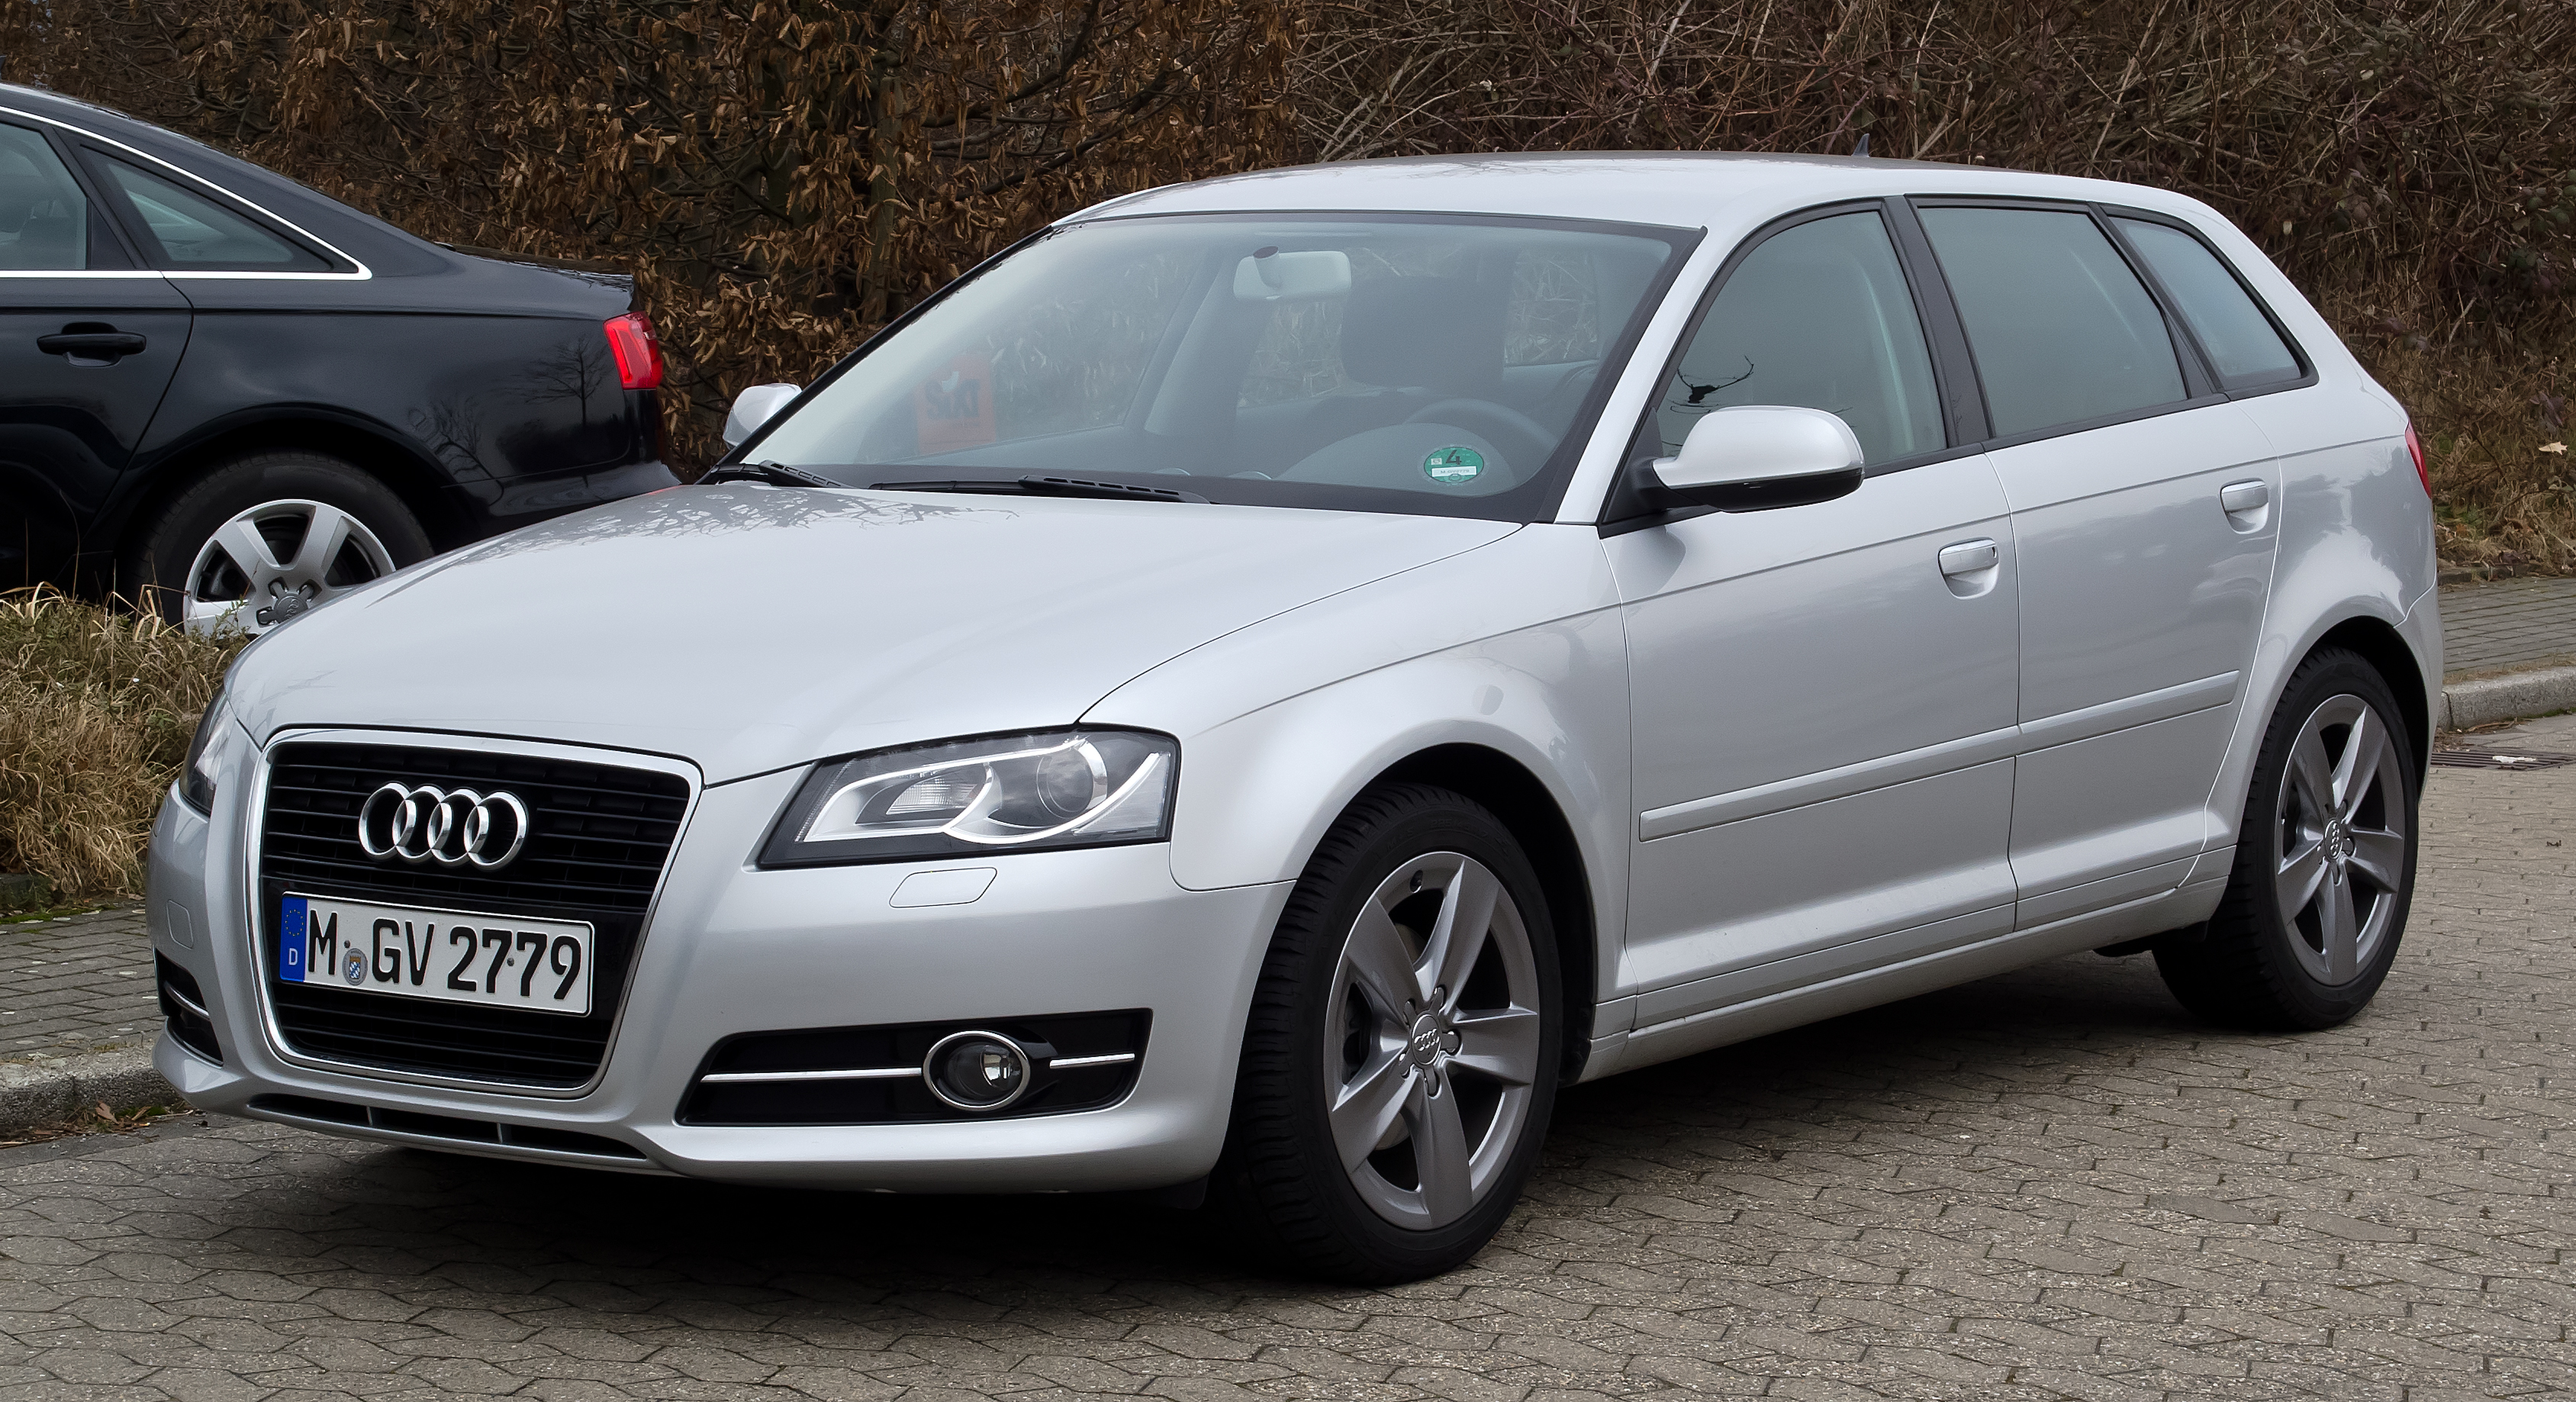 datei audi a3 sportback tdi ambition 8pa 3 facelift frontansicht 3 m rz 2012 ratingen. Black Bedroom Furniture Sets. Home Design Ideas